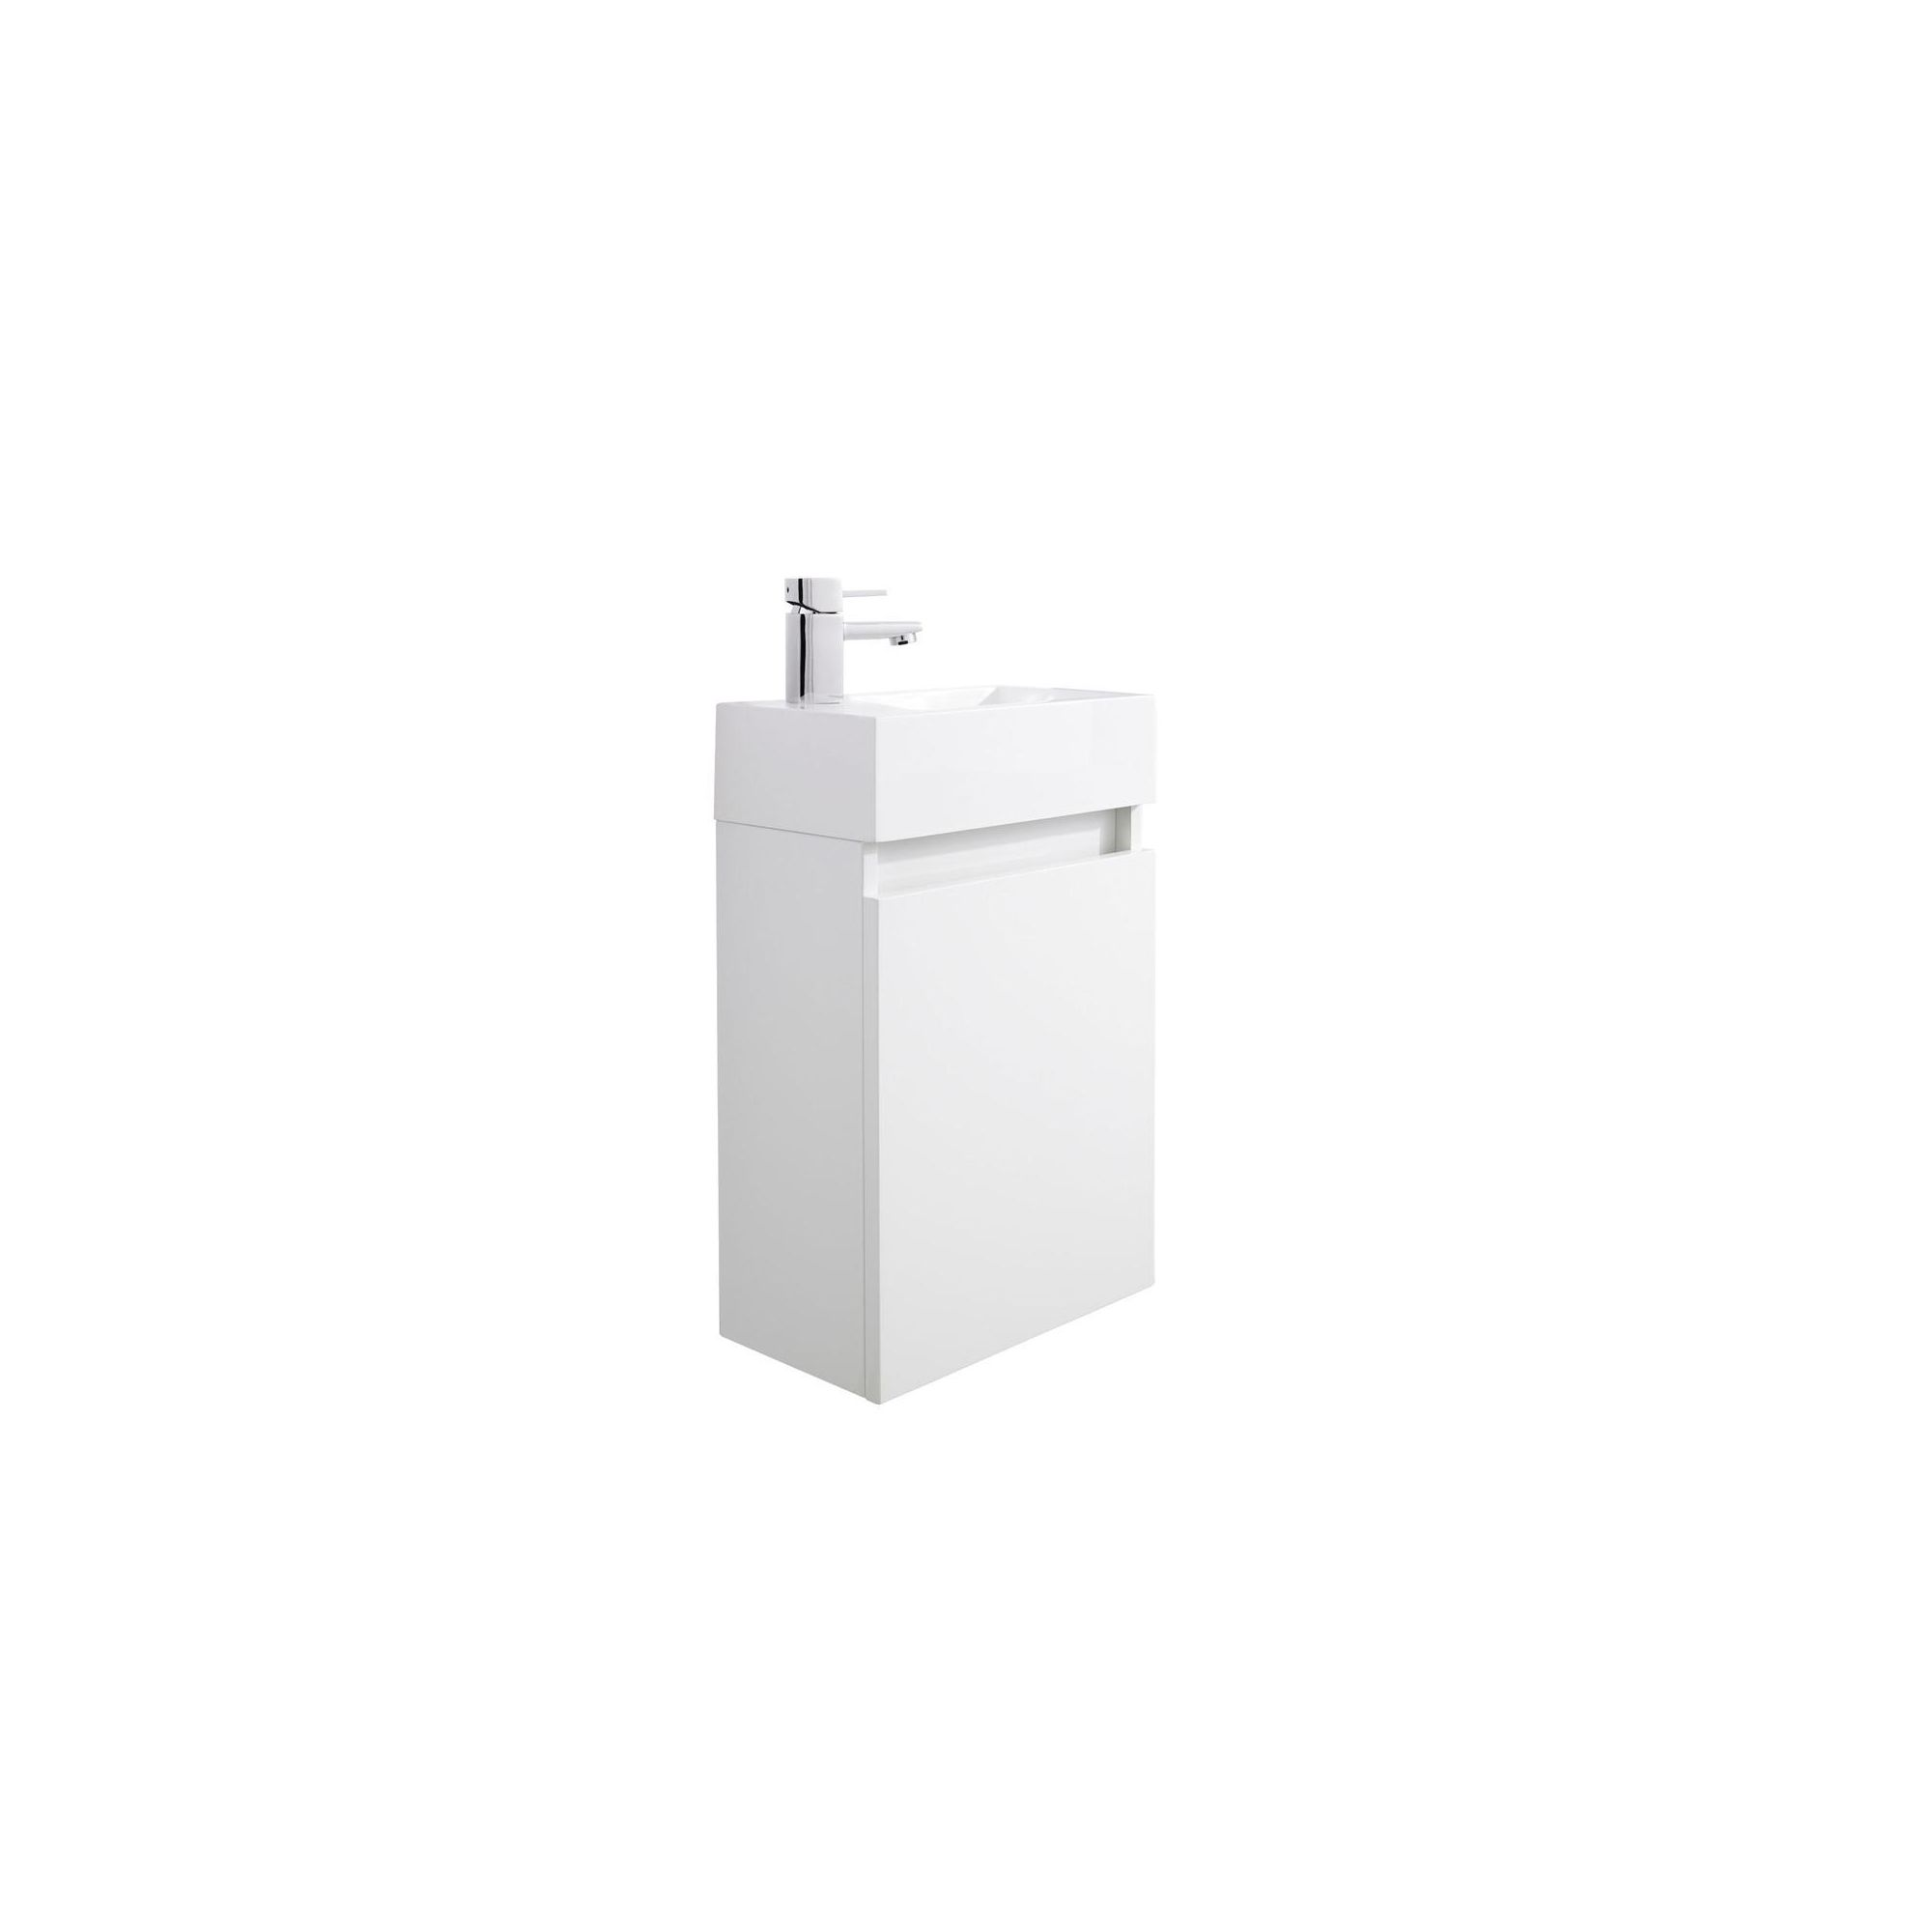 Zone Wall Hung Basin and Cabinet - High Gloss White